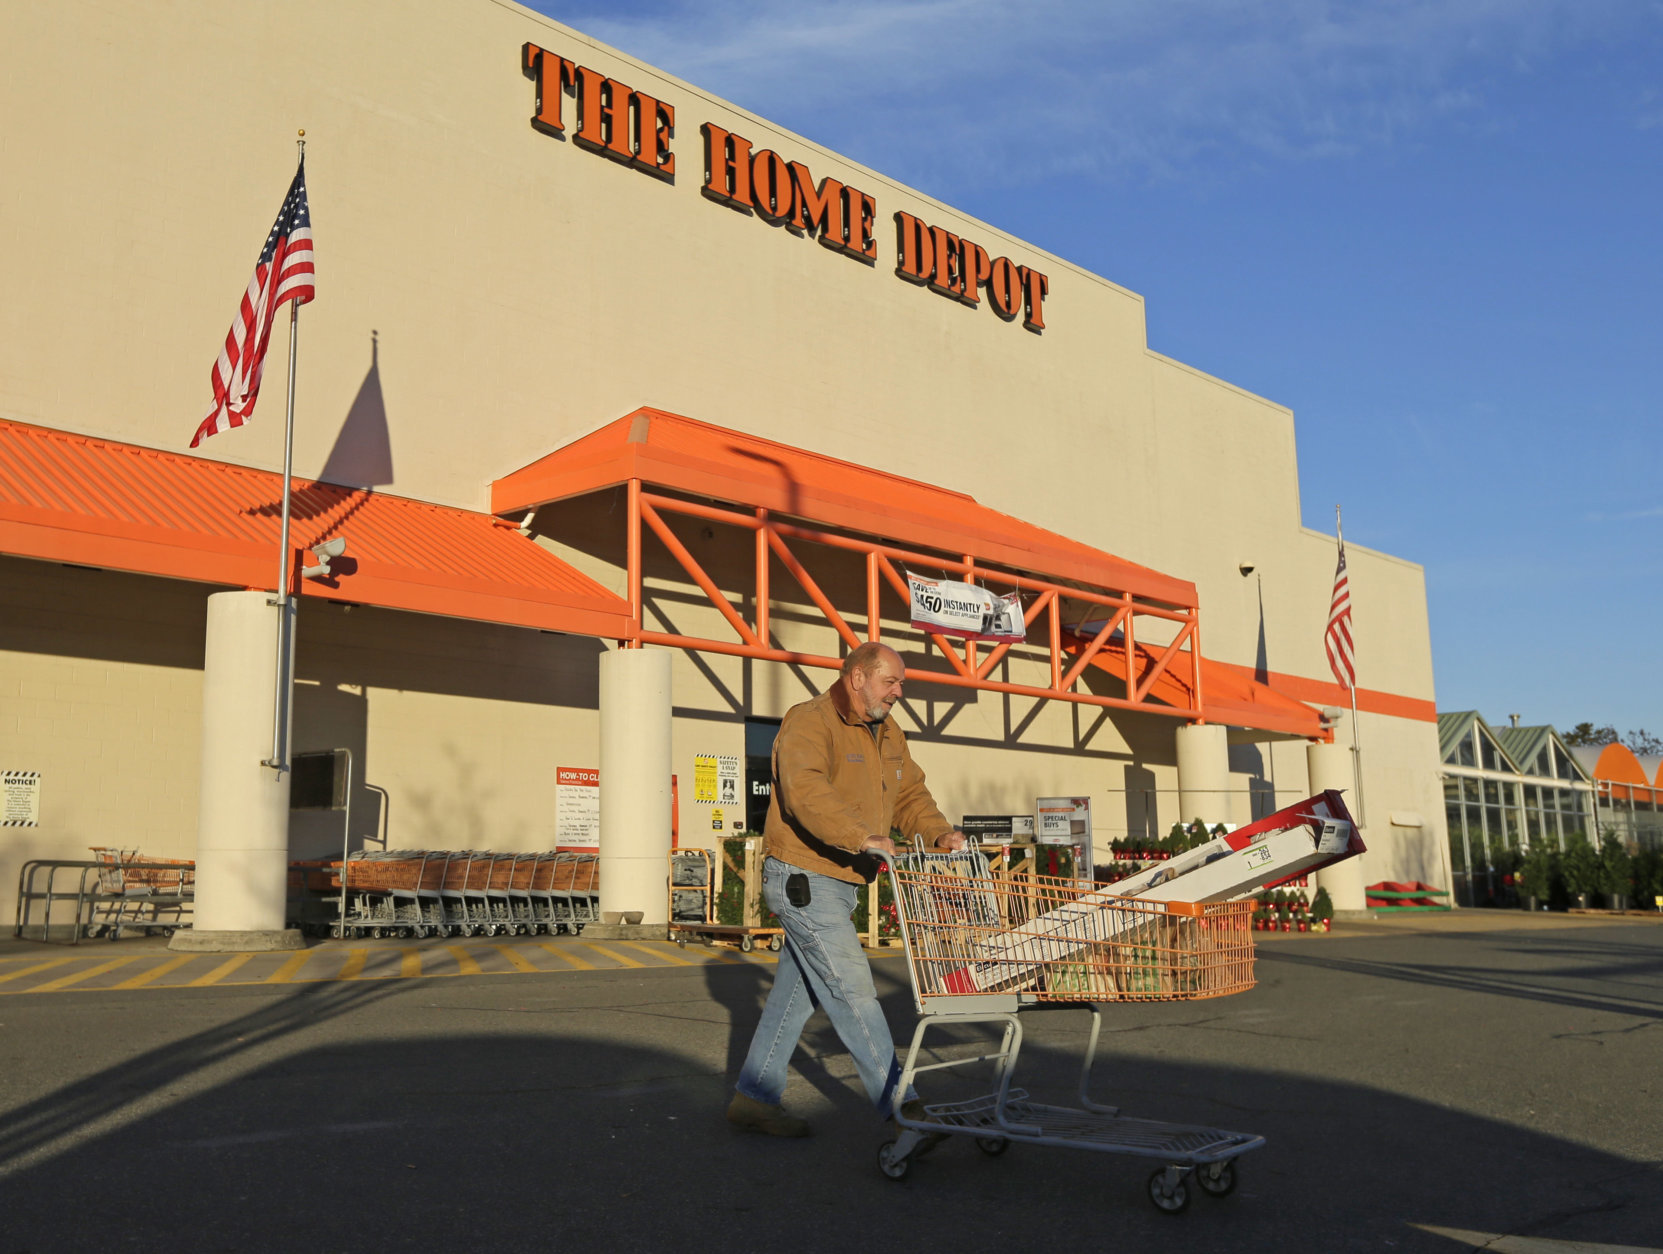 Electrical contractor Tommy Hendrick leaves a Home Depot store in Matthews, N.C., Tuesday, Nov. 18, 2014. Home Depot's third-quarter profit rose 14 percent as comparable-store sales climbed in the U.S., suggesting that a huge data breach announced two months ago has not shaken the faith of its customers. (AP Photo/Chuck Burton)